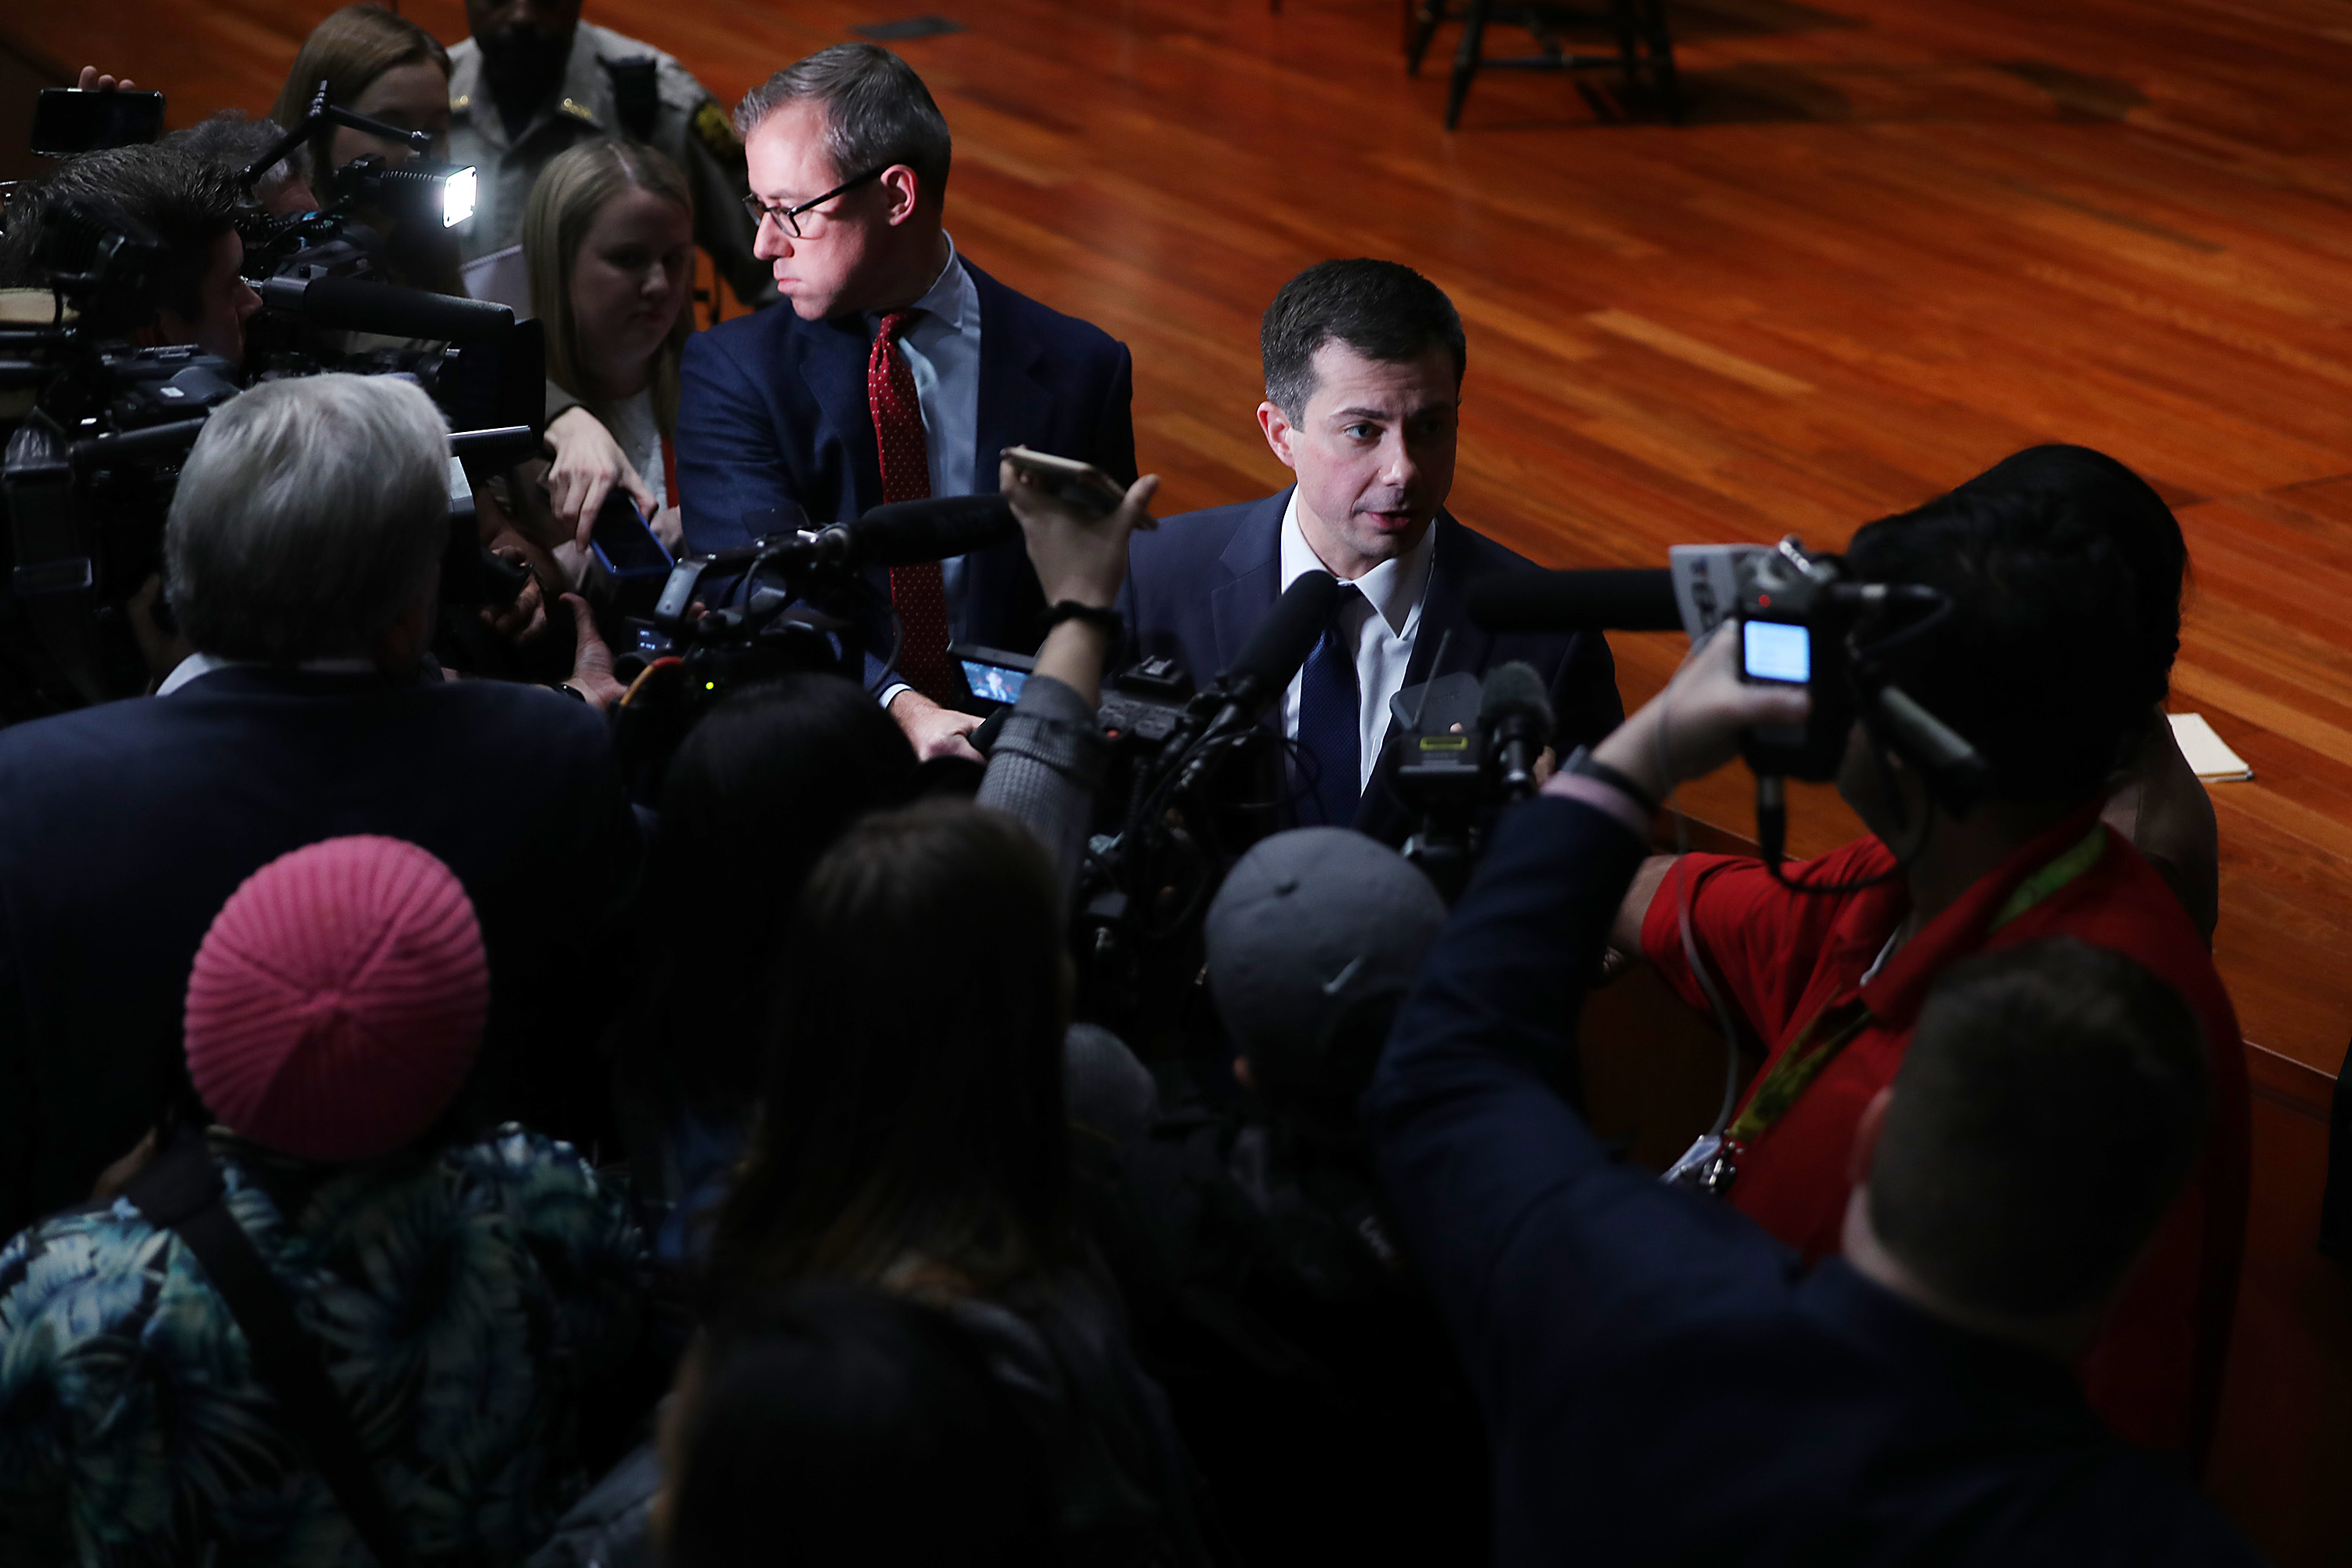 ATLANTA, GEORGIA - NOVEMBER 18: Democratic presidential candidate, South Bend, Indiana Mayor Pete Buttigieg speaks to the media after participating in a conversation with Dr. Adrienne Jones at Morehouse College Ray Charles Performing Arts Center on November 18, 2019 in Atlanta, Georgia. Buttigieg continues to campaign as polls show him gaining momentum against his Democratic rivals. (Photo by Joe Raedle/Getty Images)